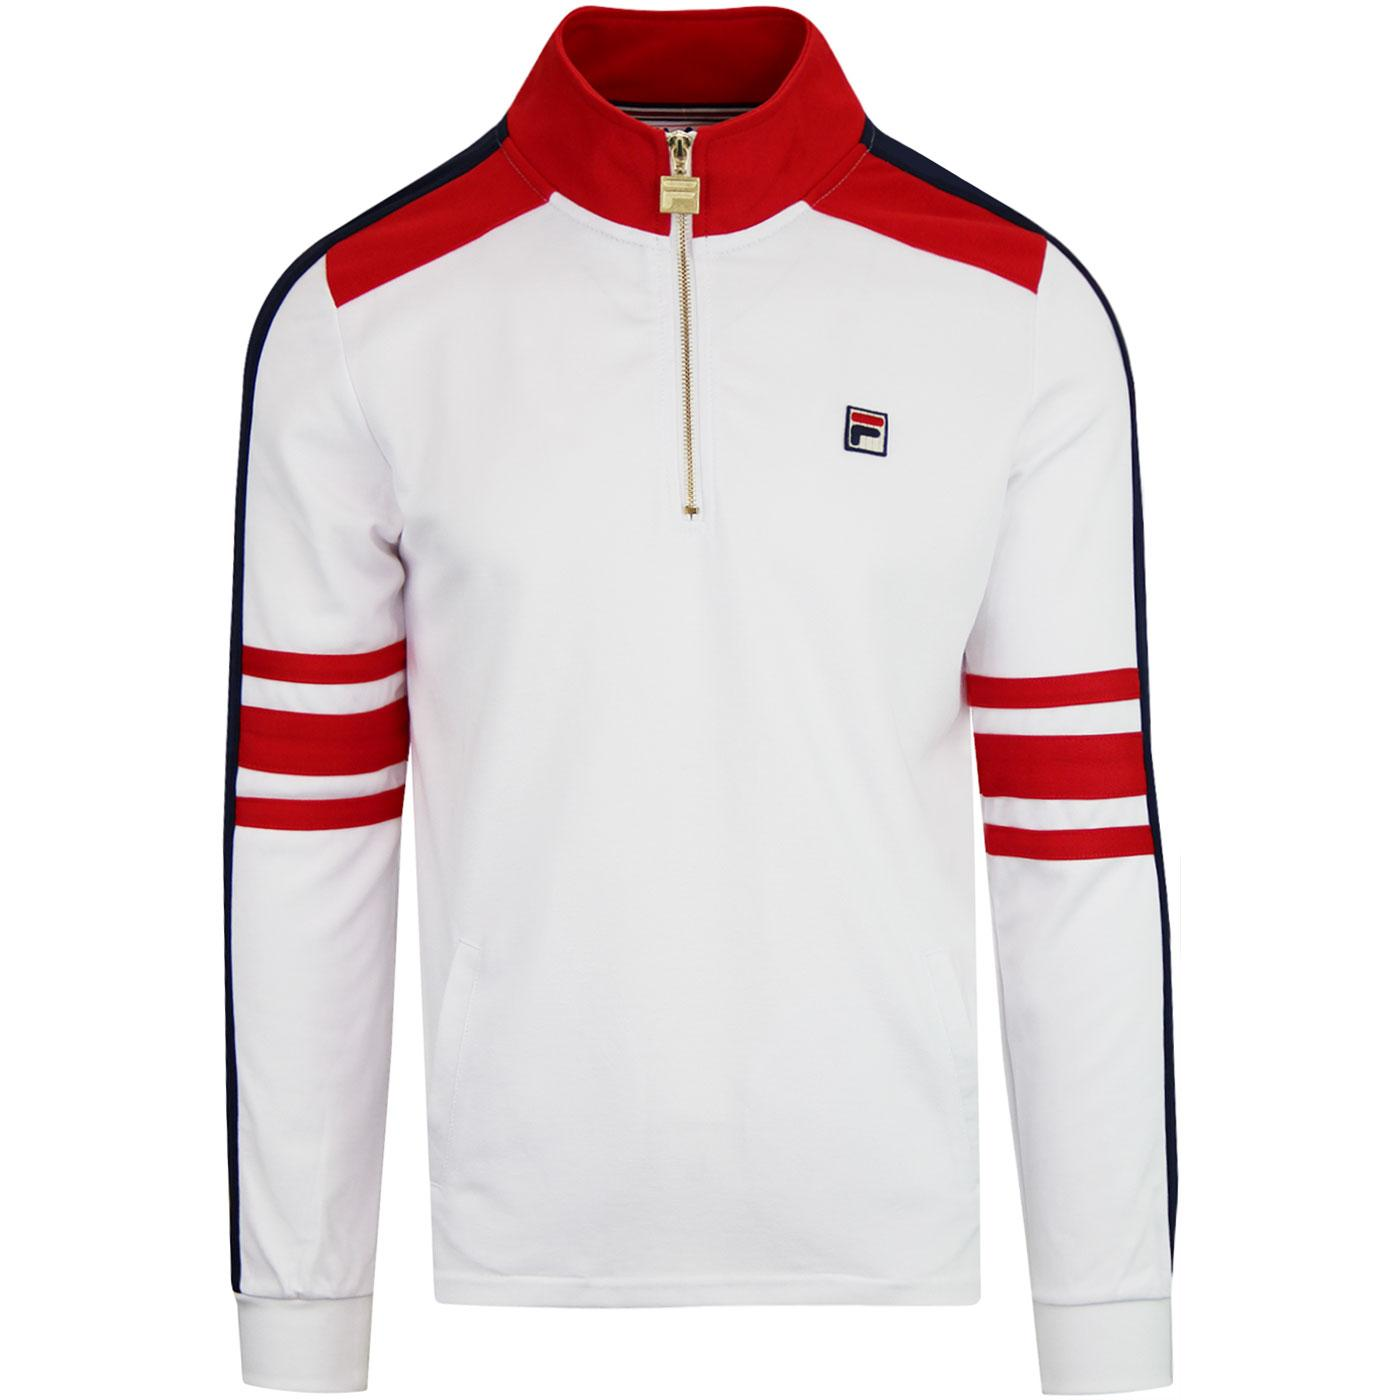 Alastair FILA VINTAGE Retro 80s Half Zip Track Top